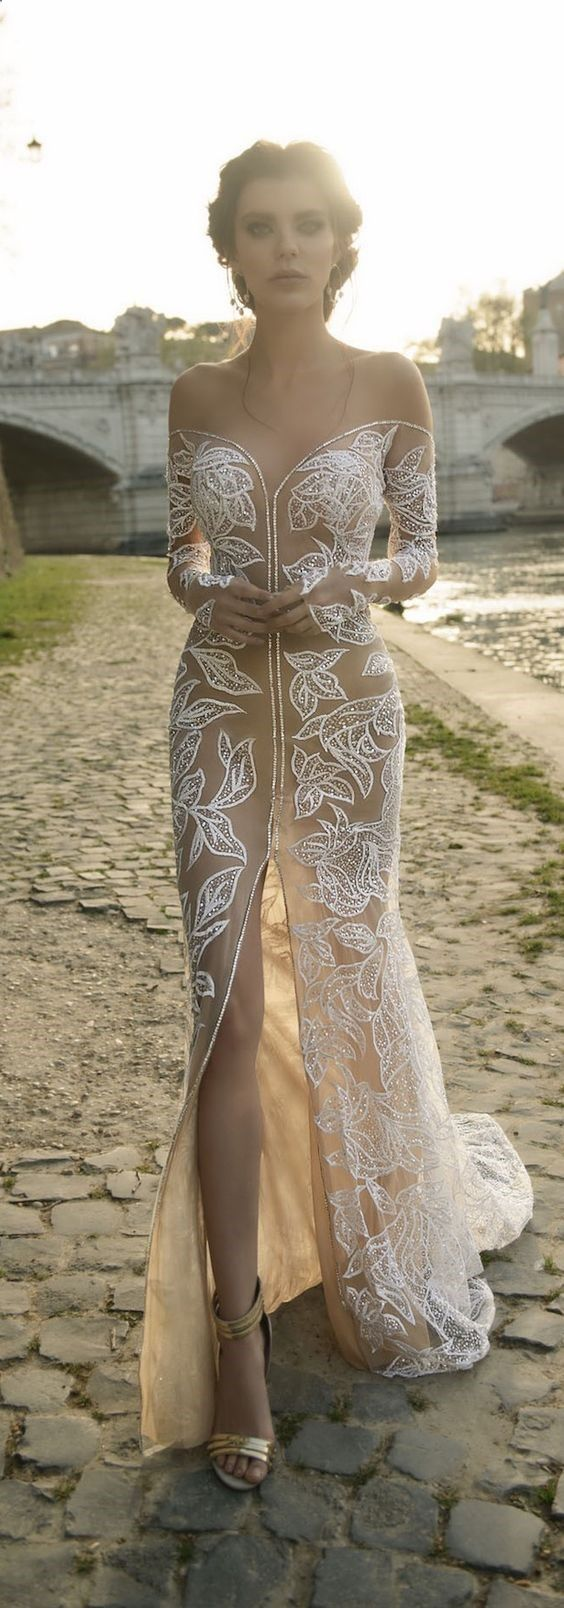 Juliet wedding dress  Pinterest  Juliette Sarrazin  wow  Pinterest  Sexy dresses